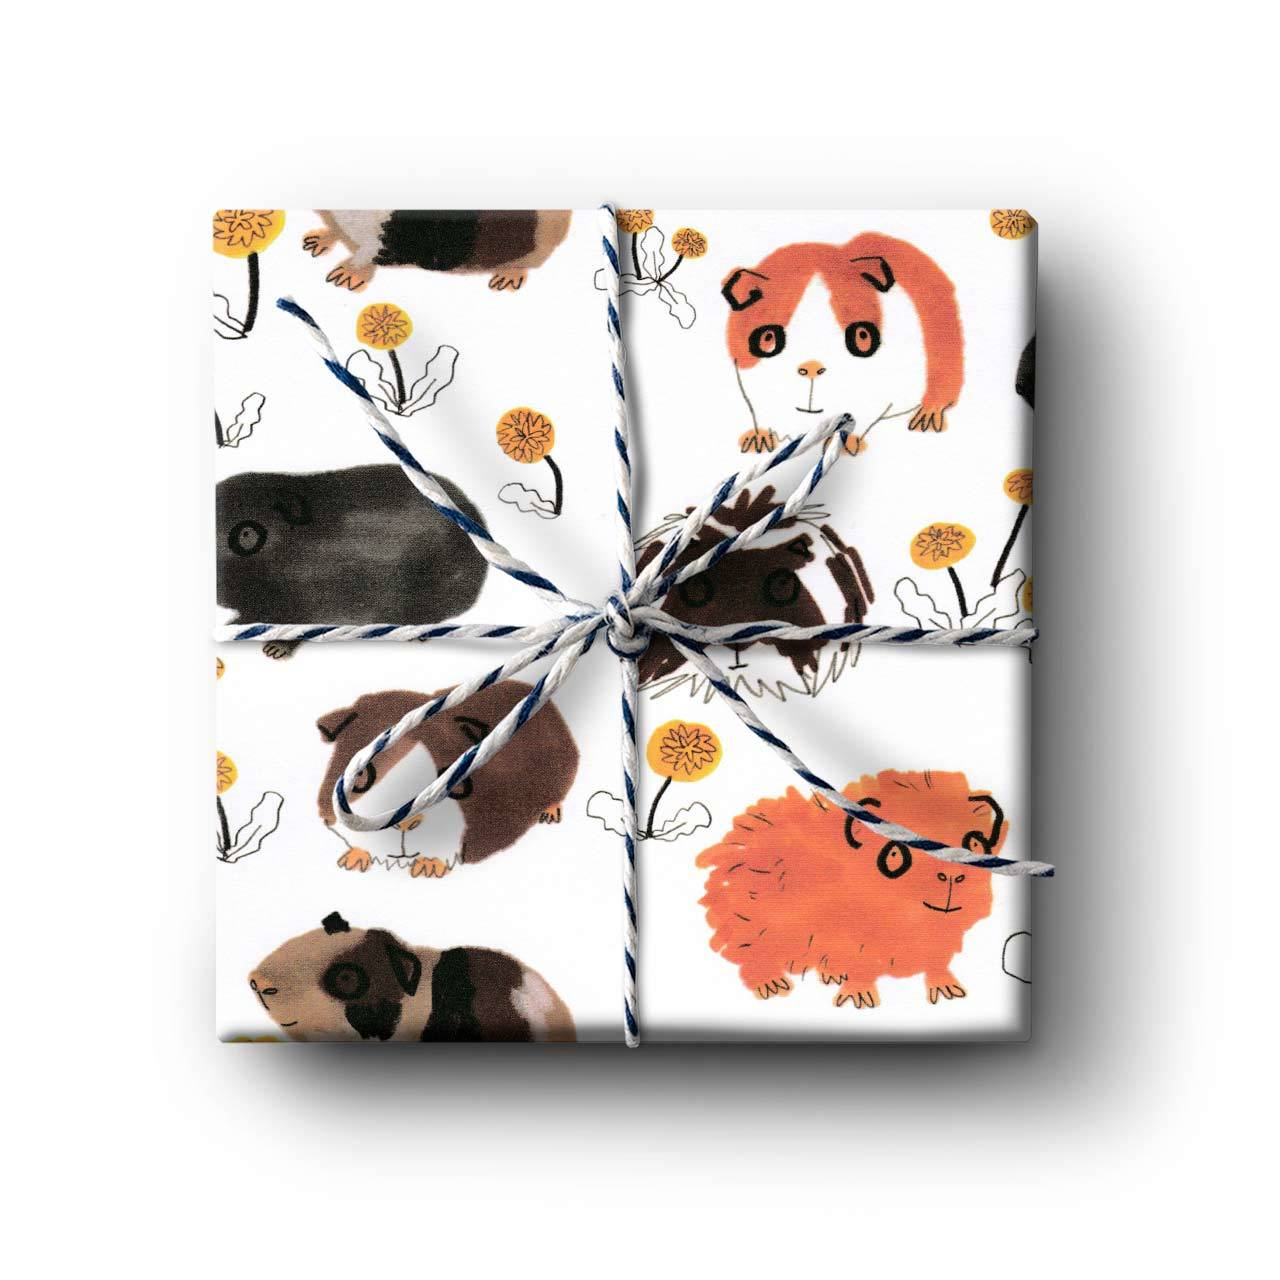 Guinea Pig Gift Wrapping Paper - Folded Single Sheet